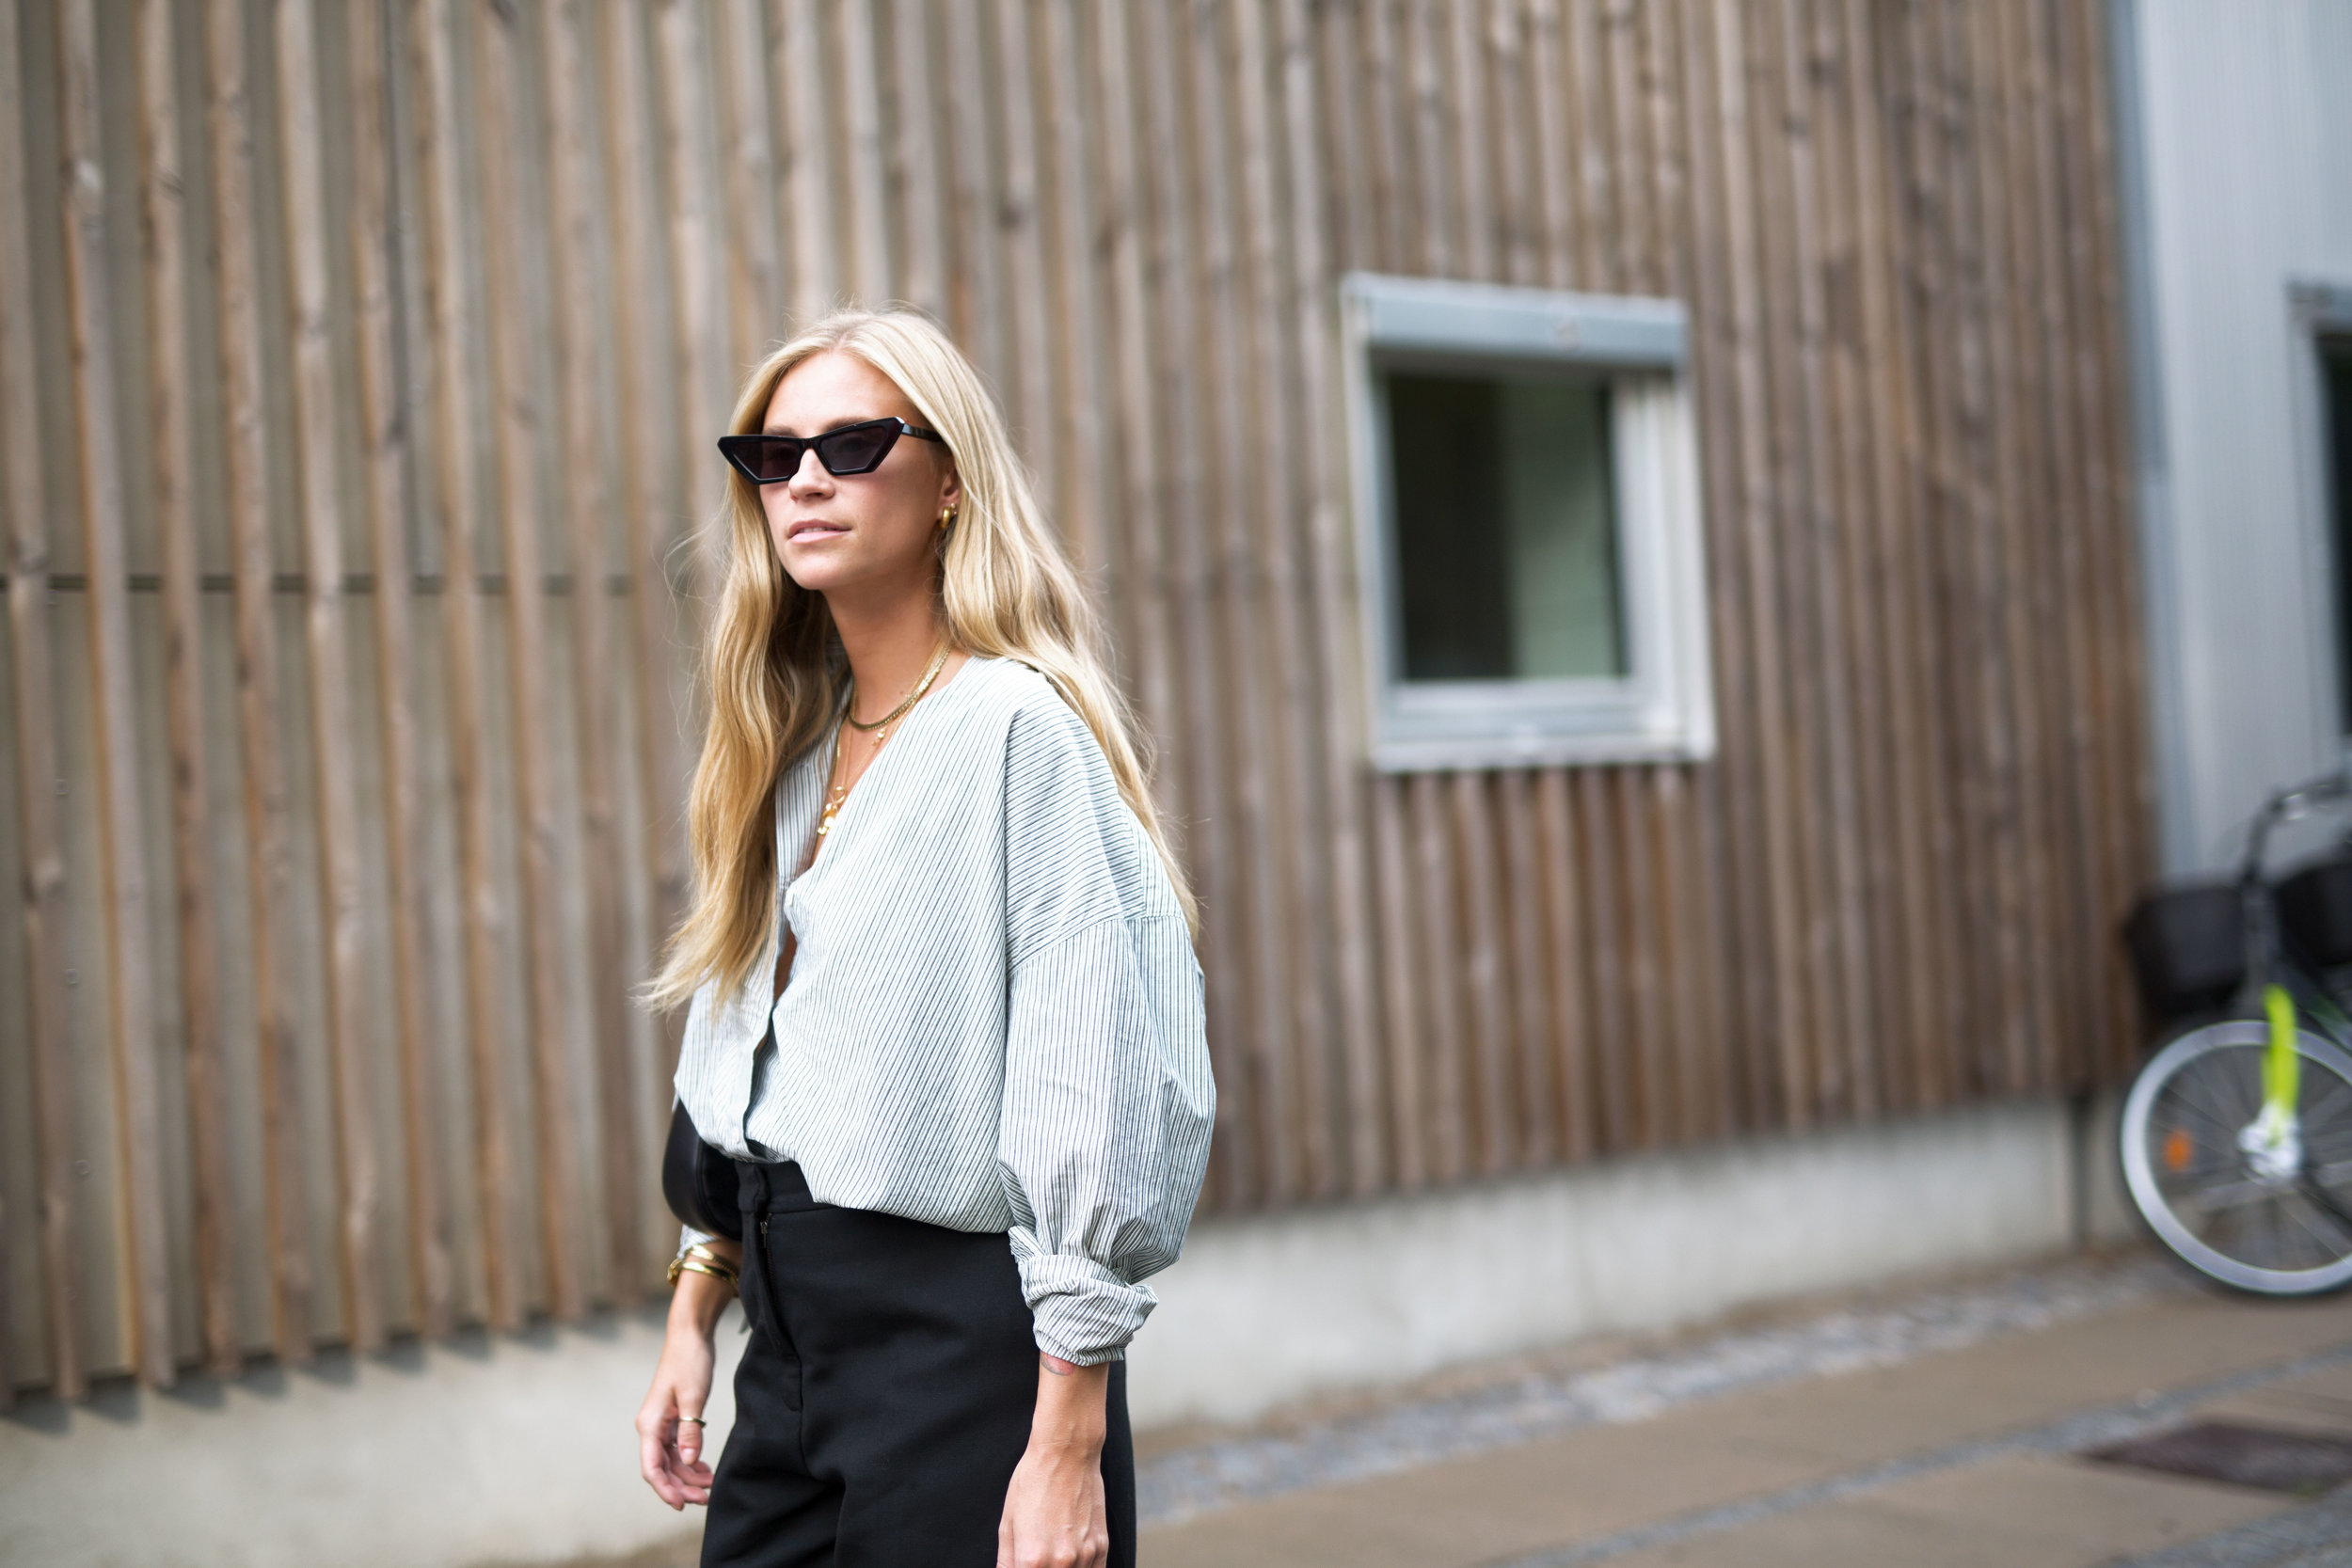 TheStreetland_Copenhagen_Fashion_Week_SS19_82.jpg